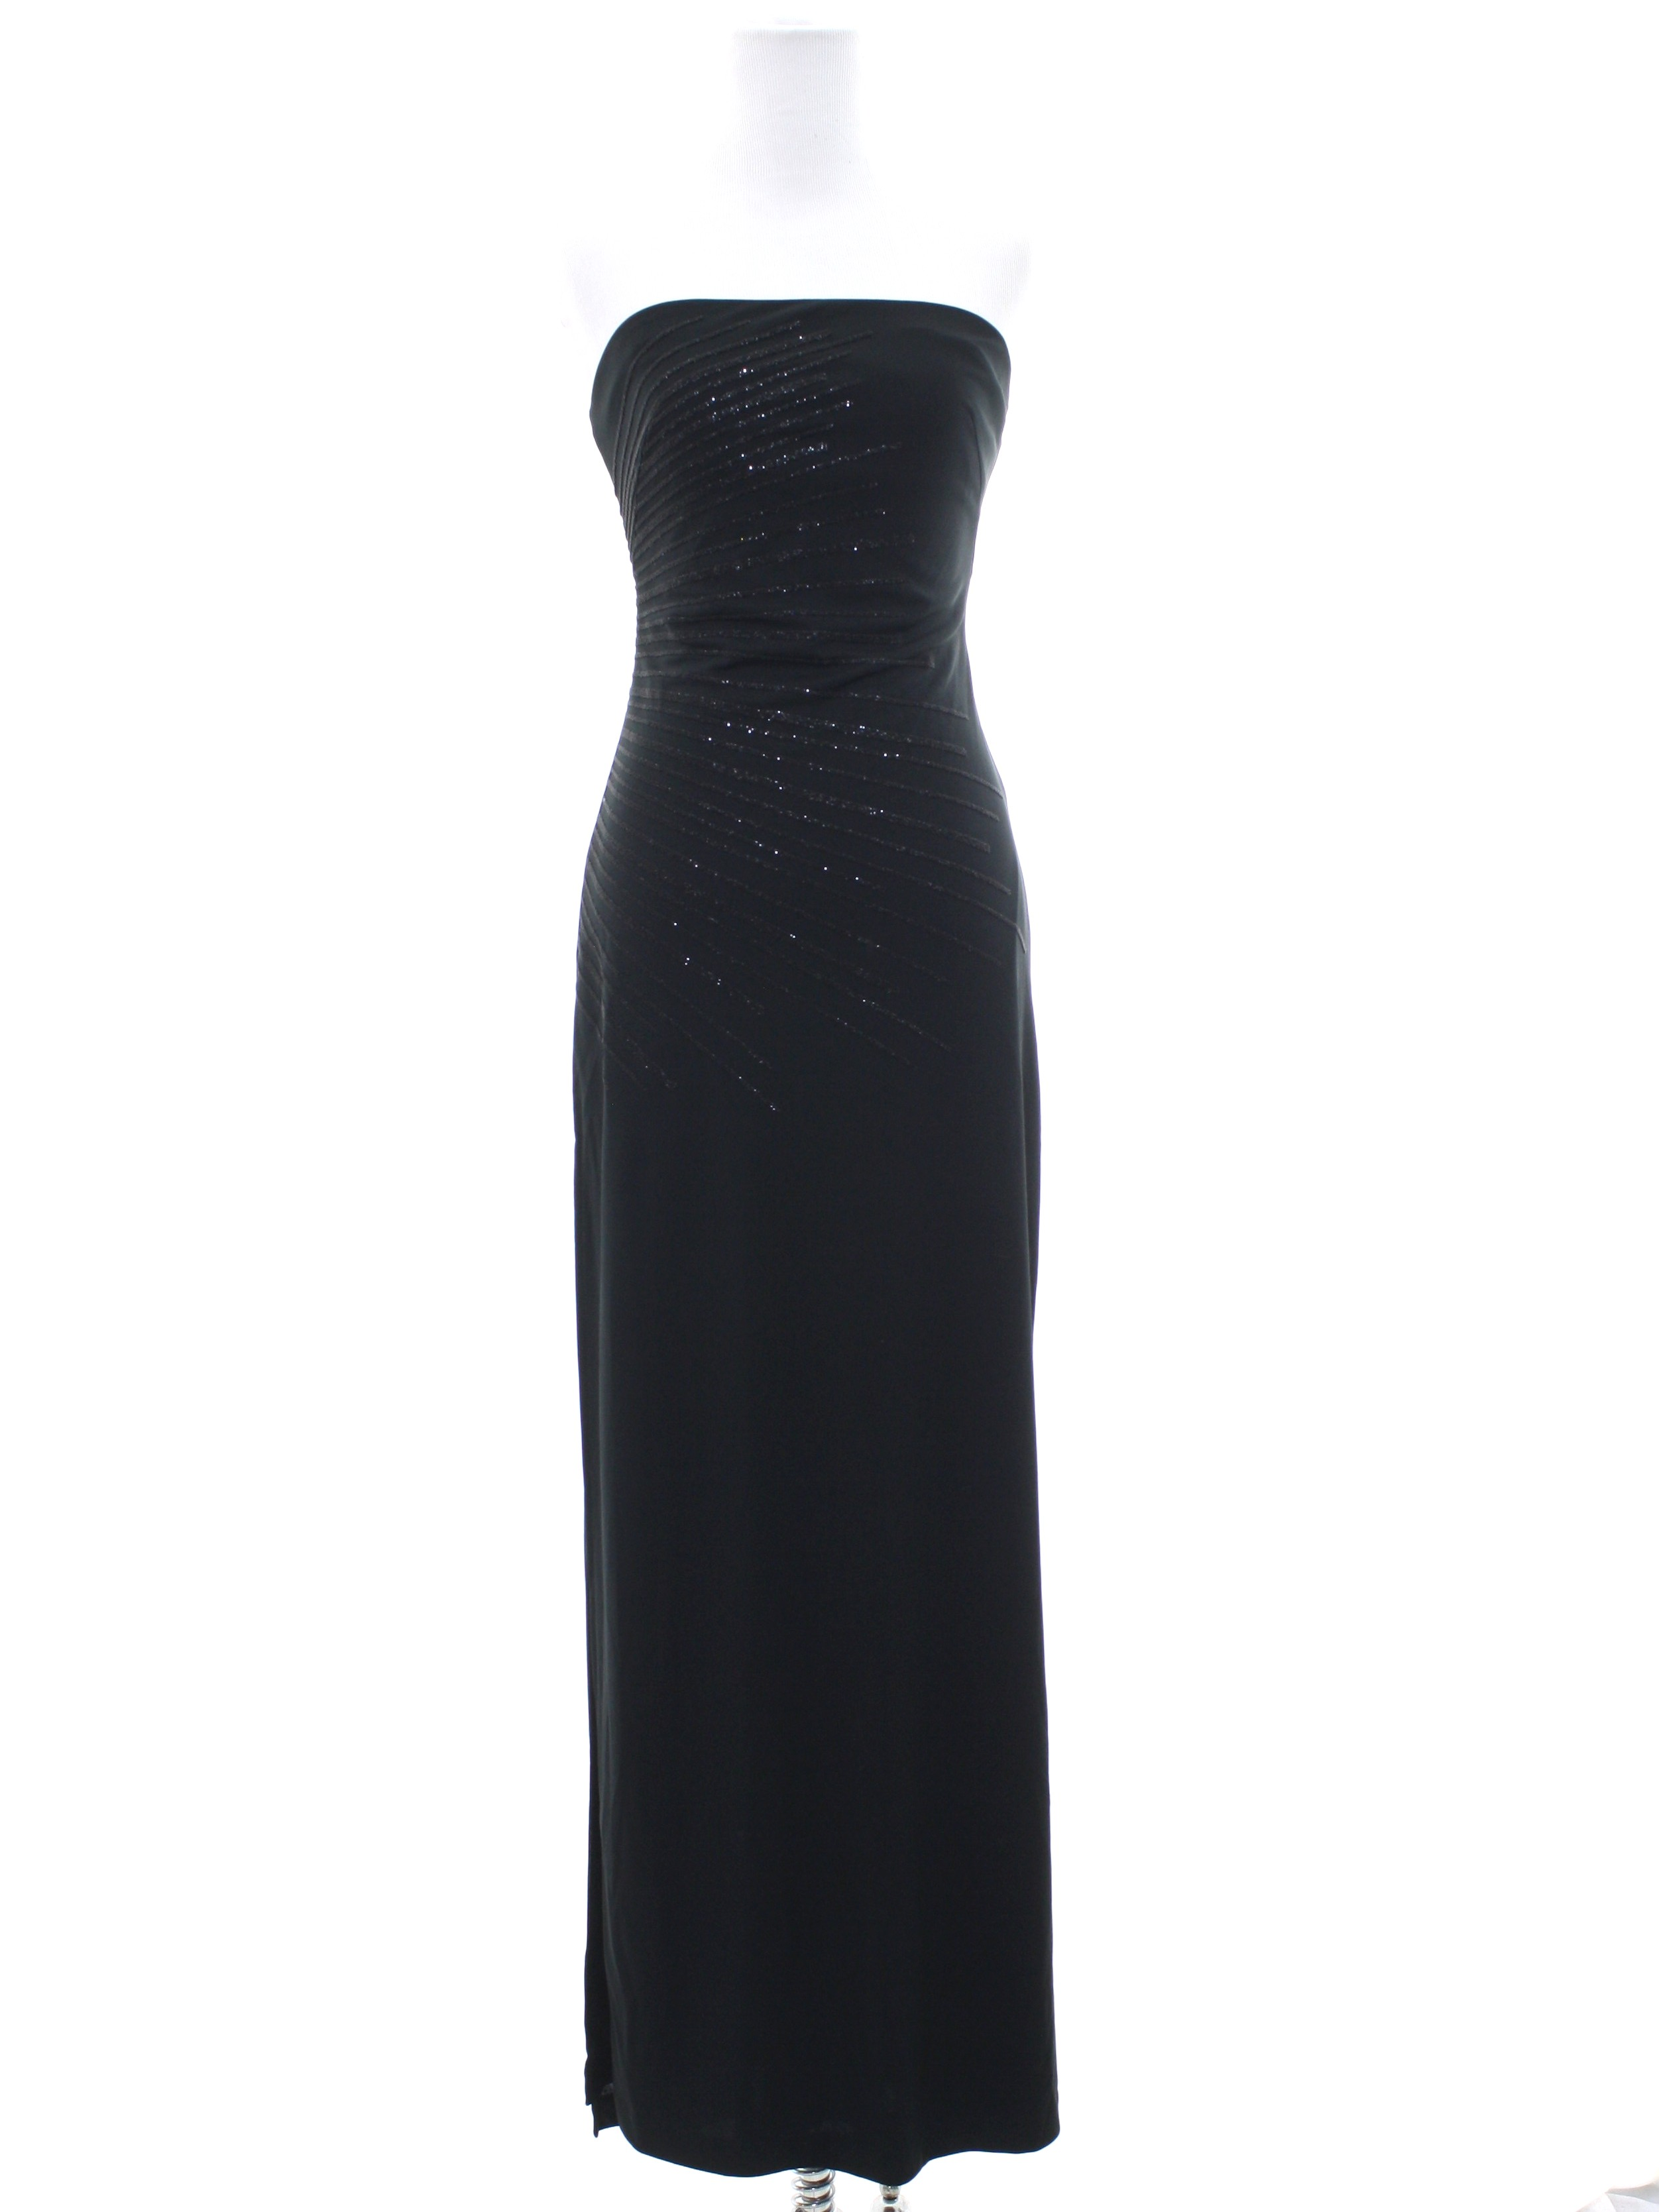 Retro 90s Tail Dress Express Womens Black Background Polyester Sleeveless Maxi Wicked Prom Or Squared Neckline